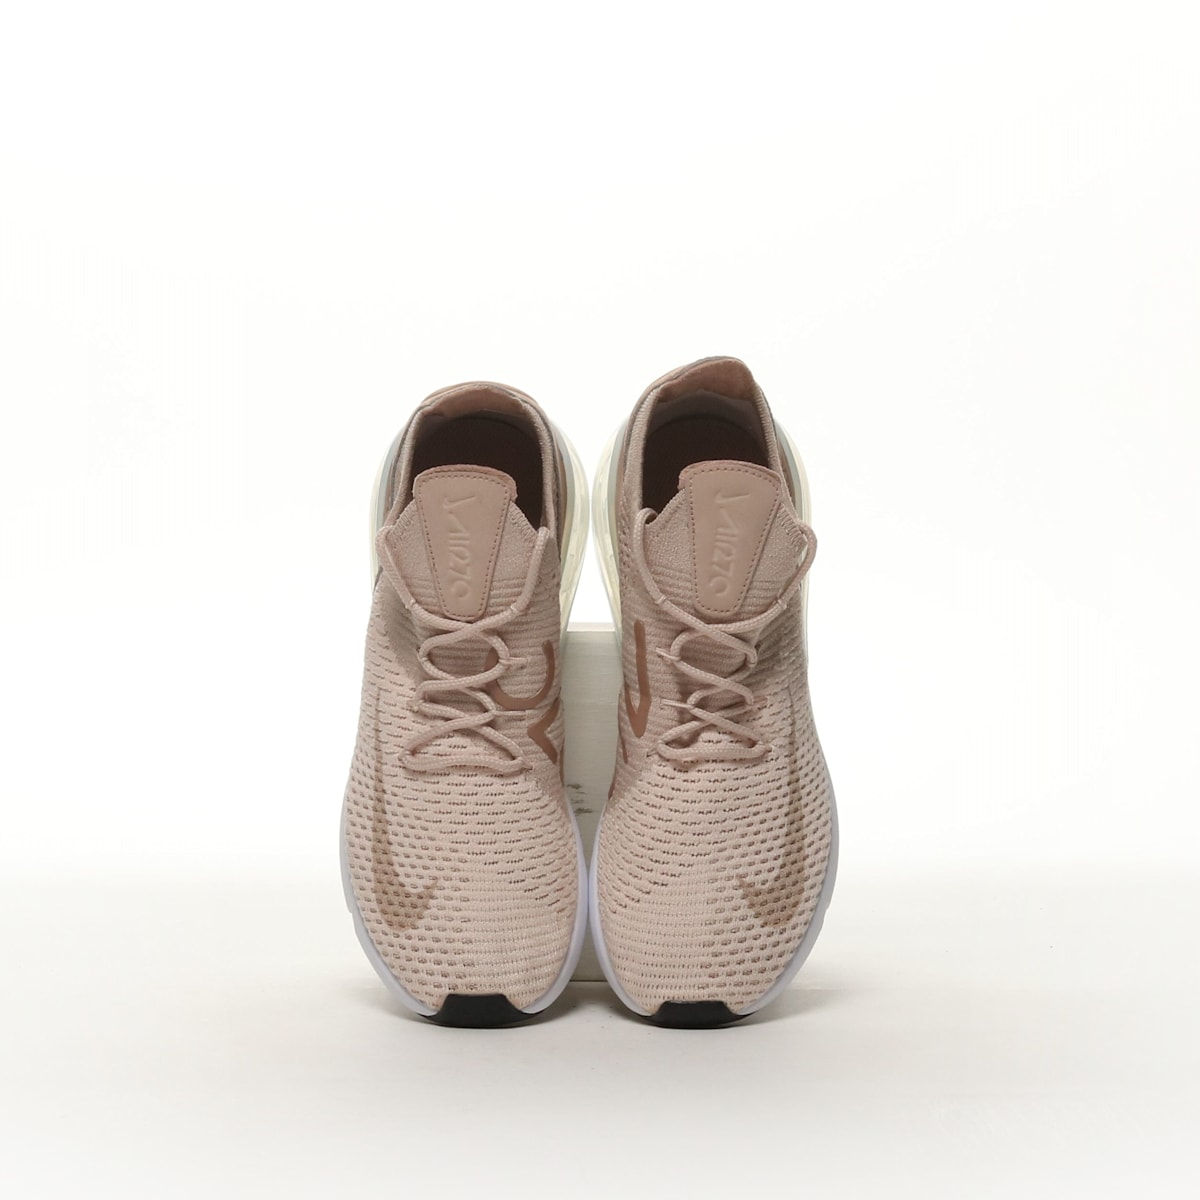 8d00d215ebe80 Nike Air Max 270 Flyknit - GUAVA ICE/DESERT DUST/WHITE/PARTICLE ...